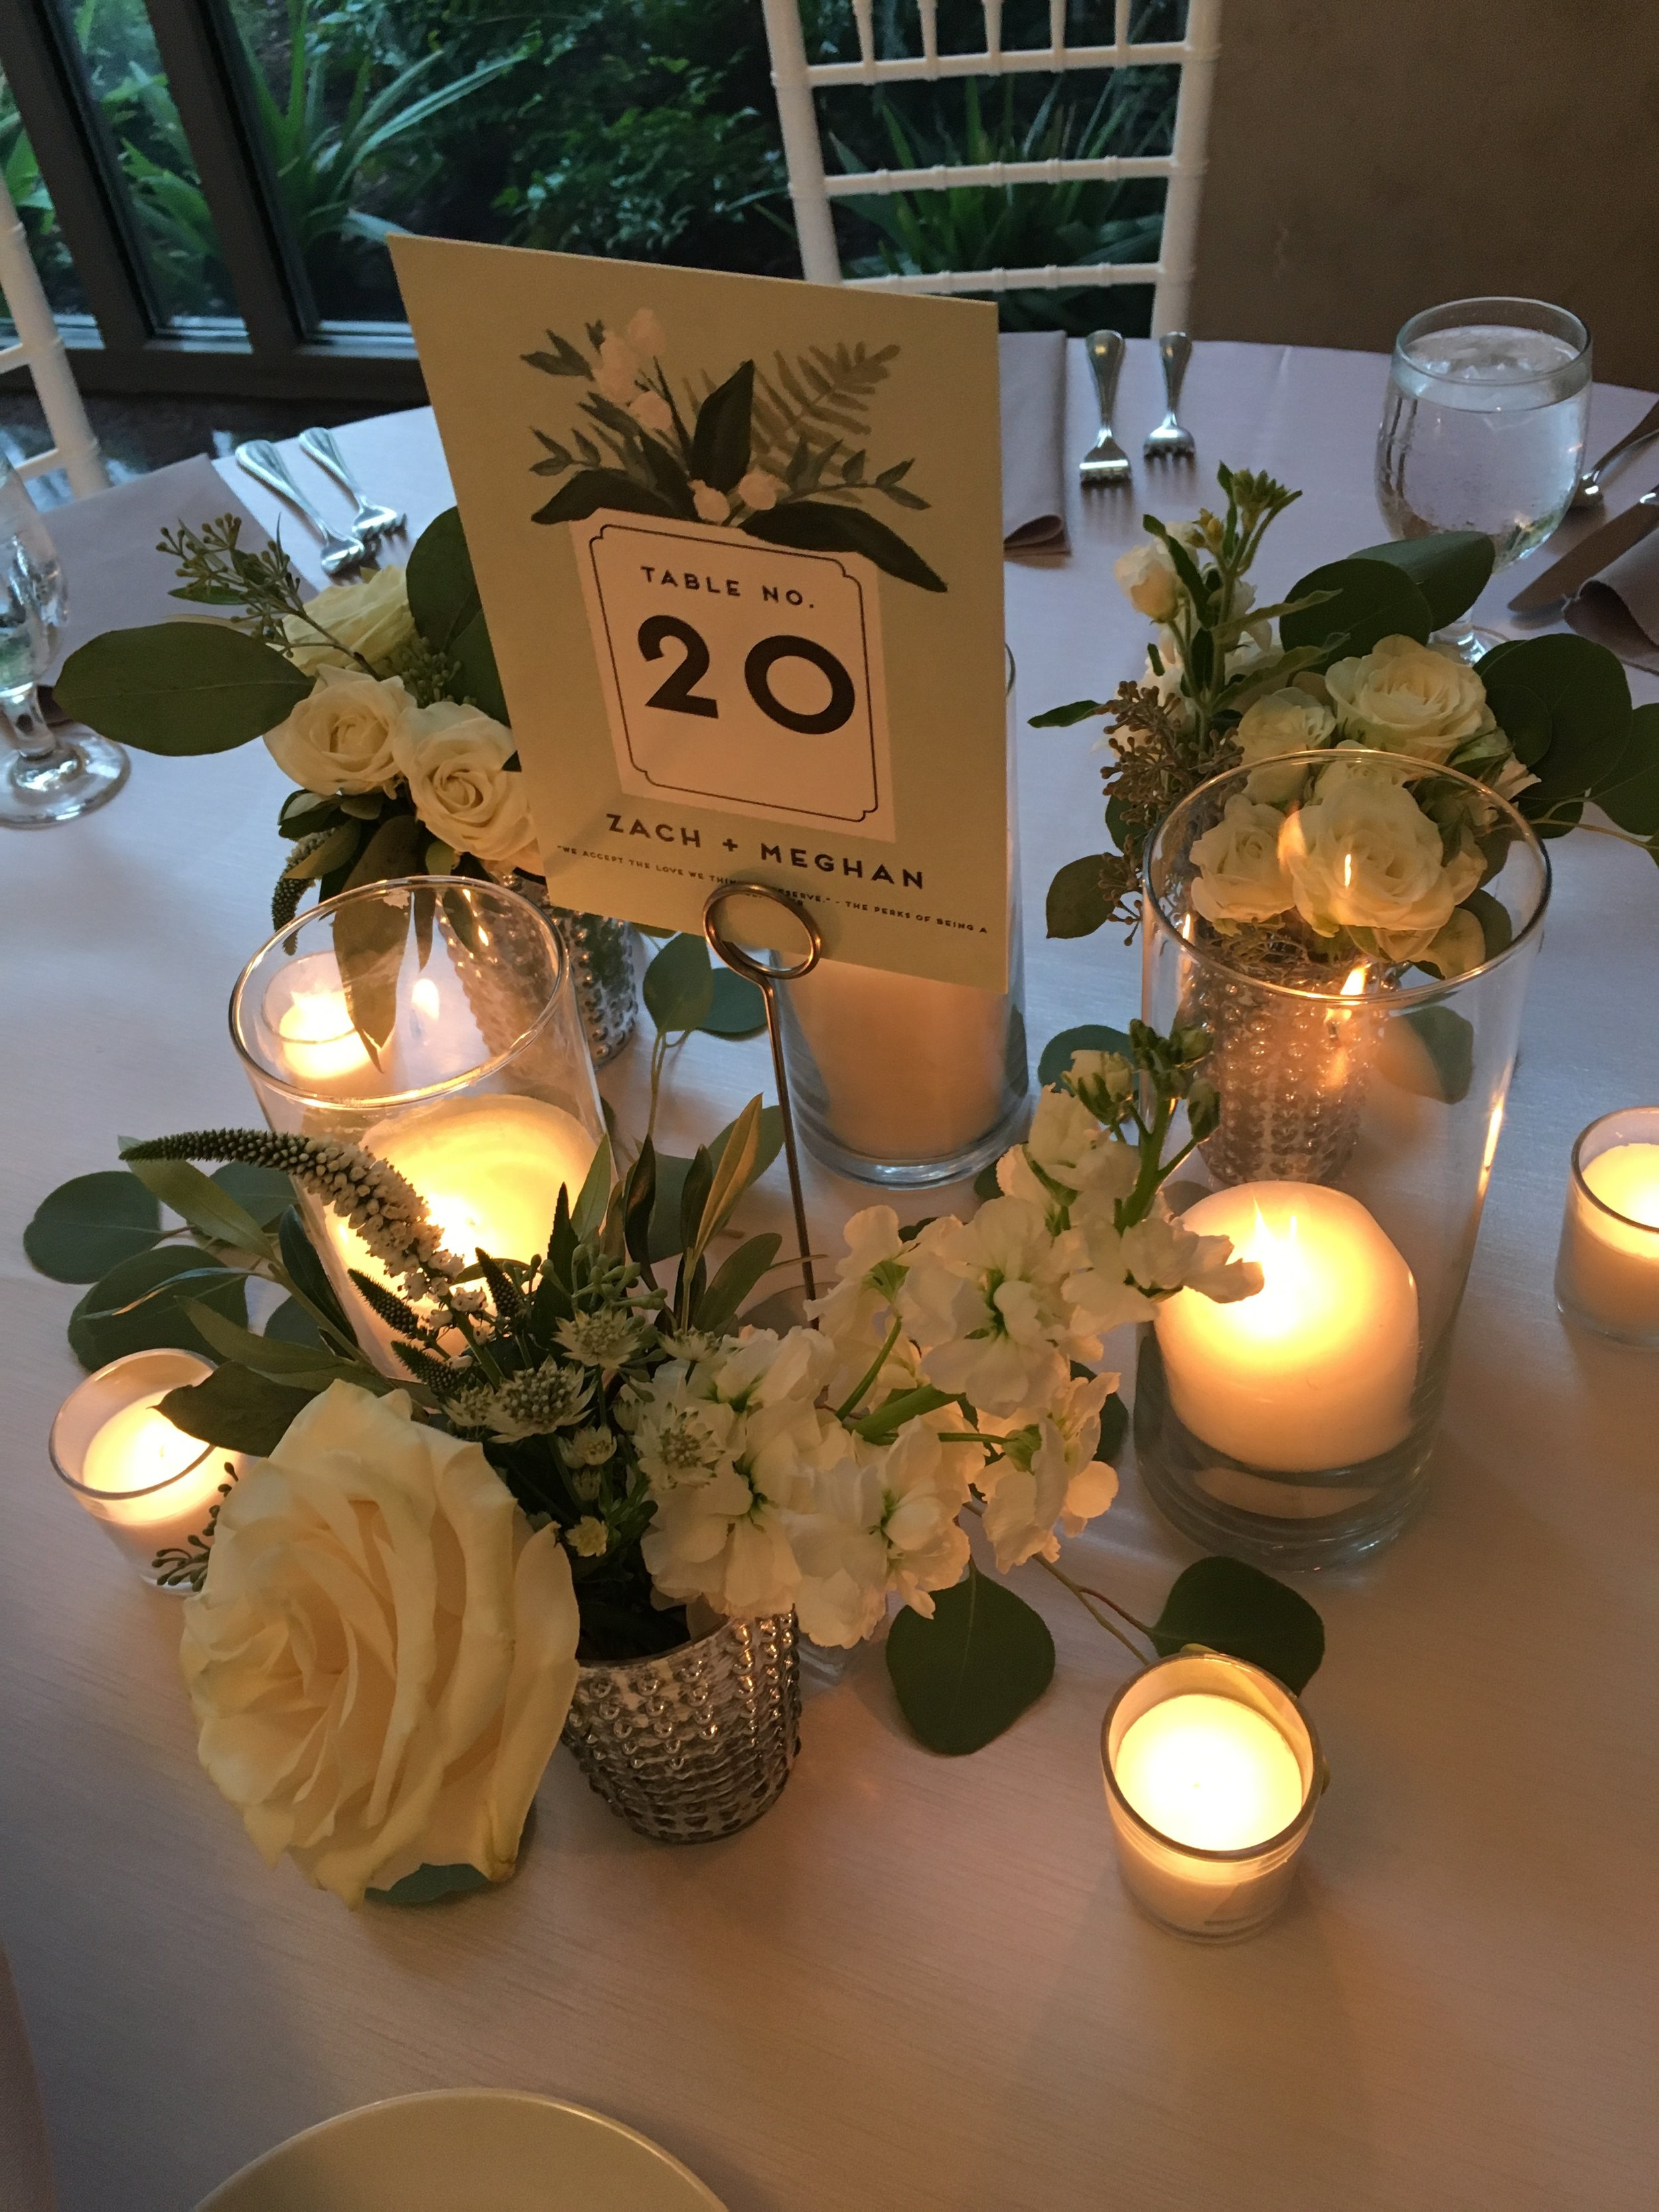 Ah! Loved Meghan's vision for her centerpieces! Courtney did a great job executing!